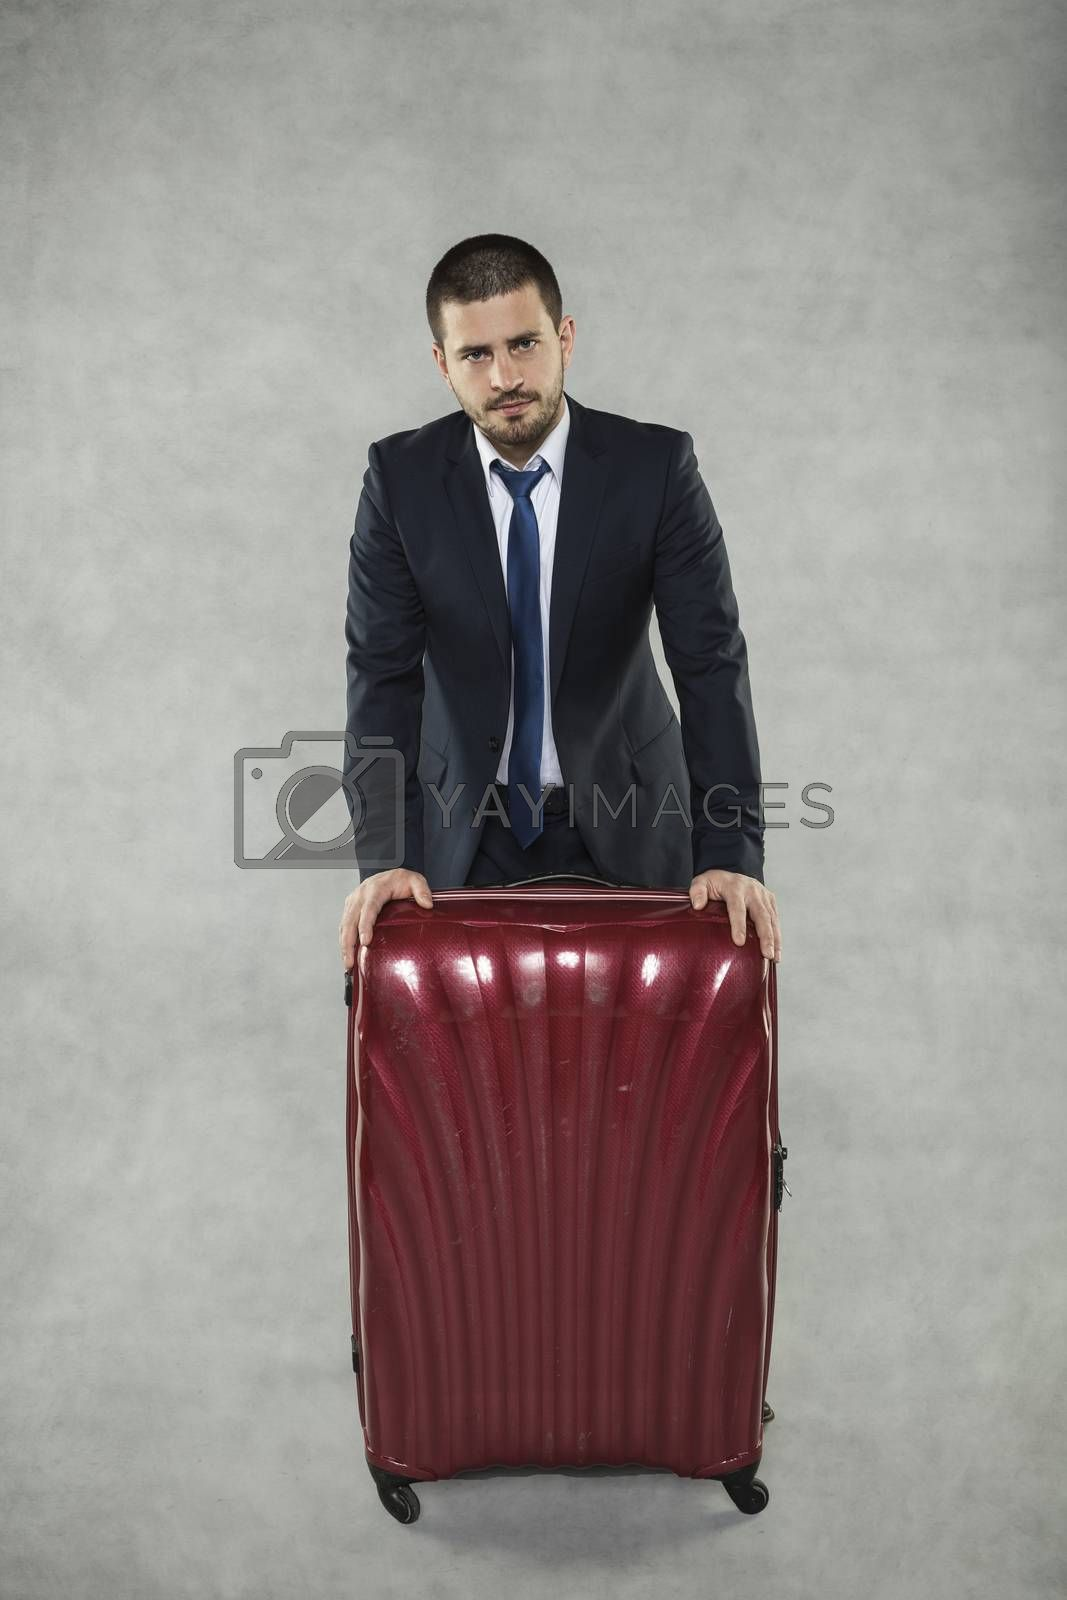 Suitcase already packed